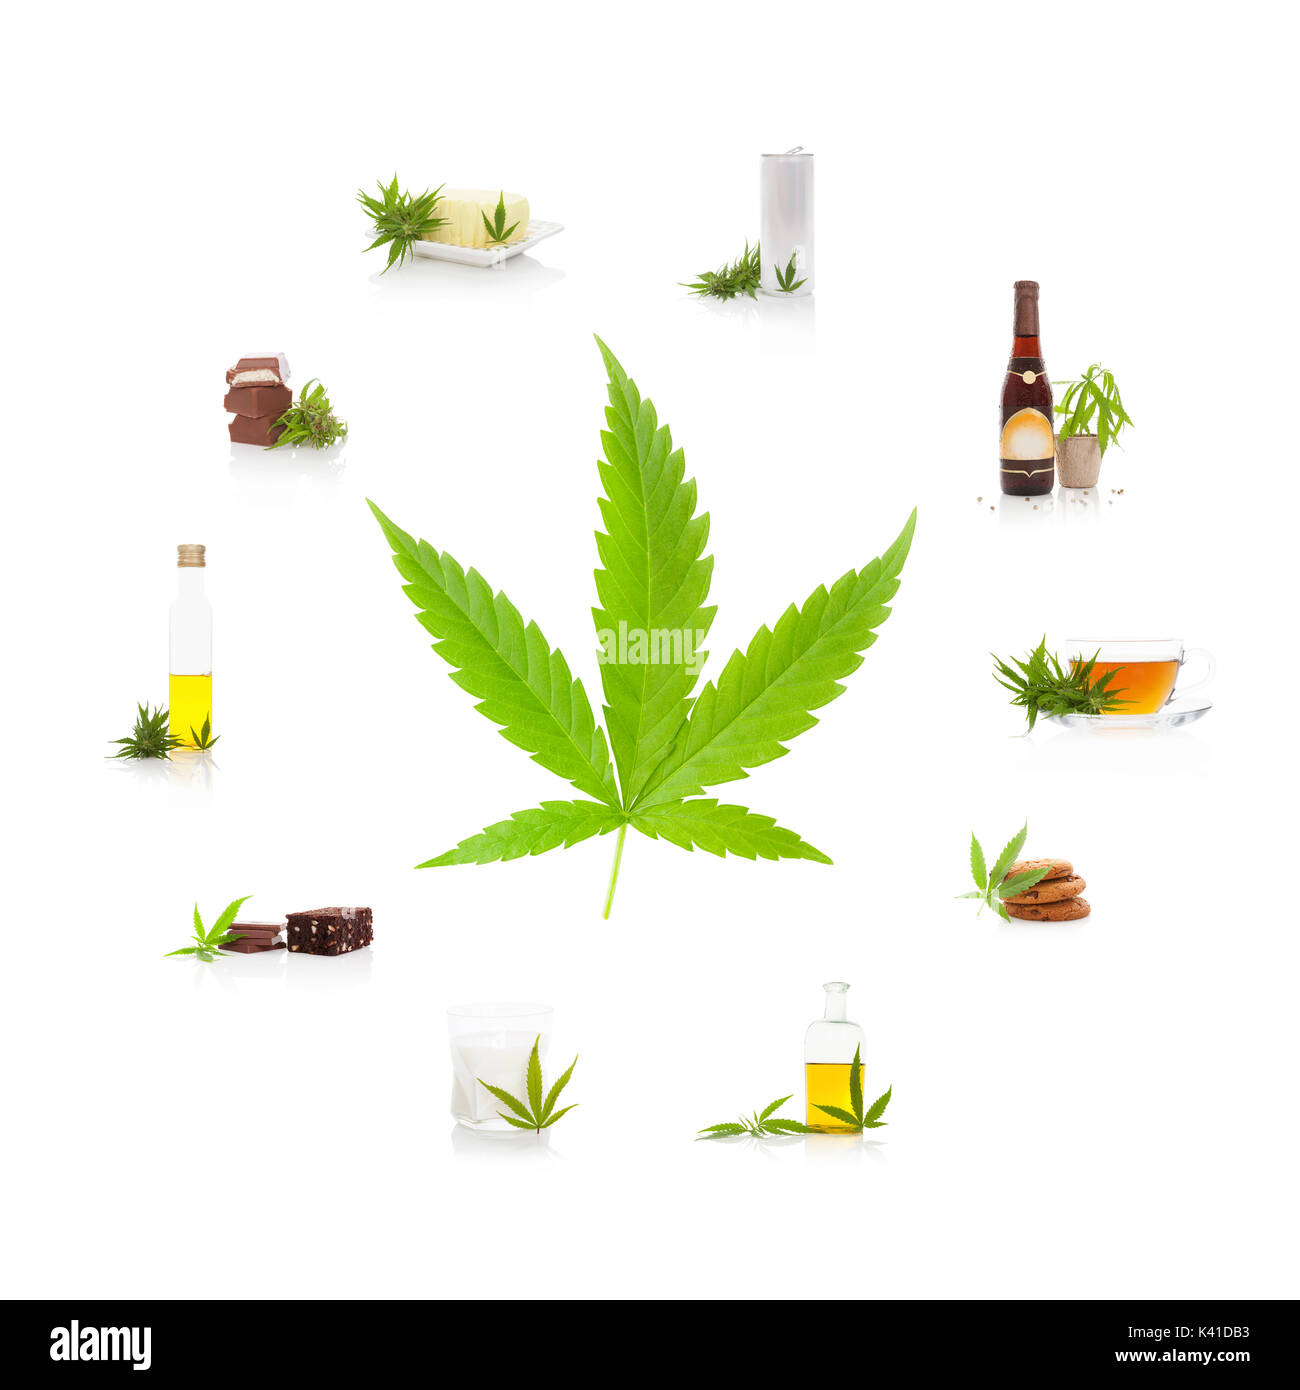 Cannabis and its usage. Marijuana leaf and edible marijuana products. Butter, tea, beer, energy drink, oil, chocolate, cookies and milk. - Stock Image